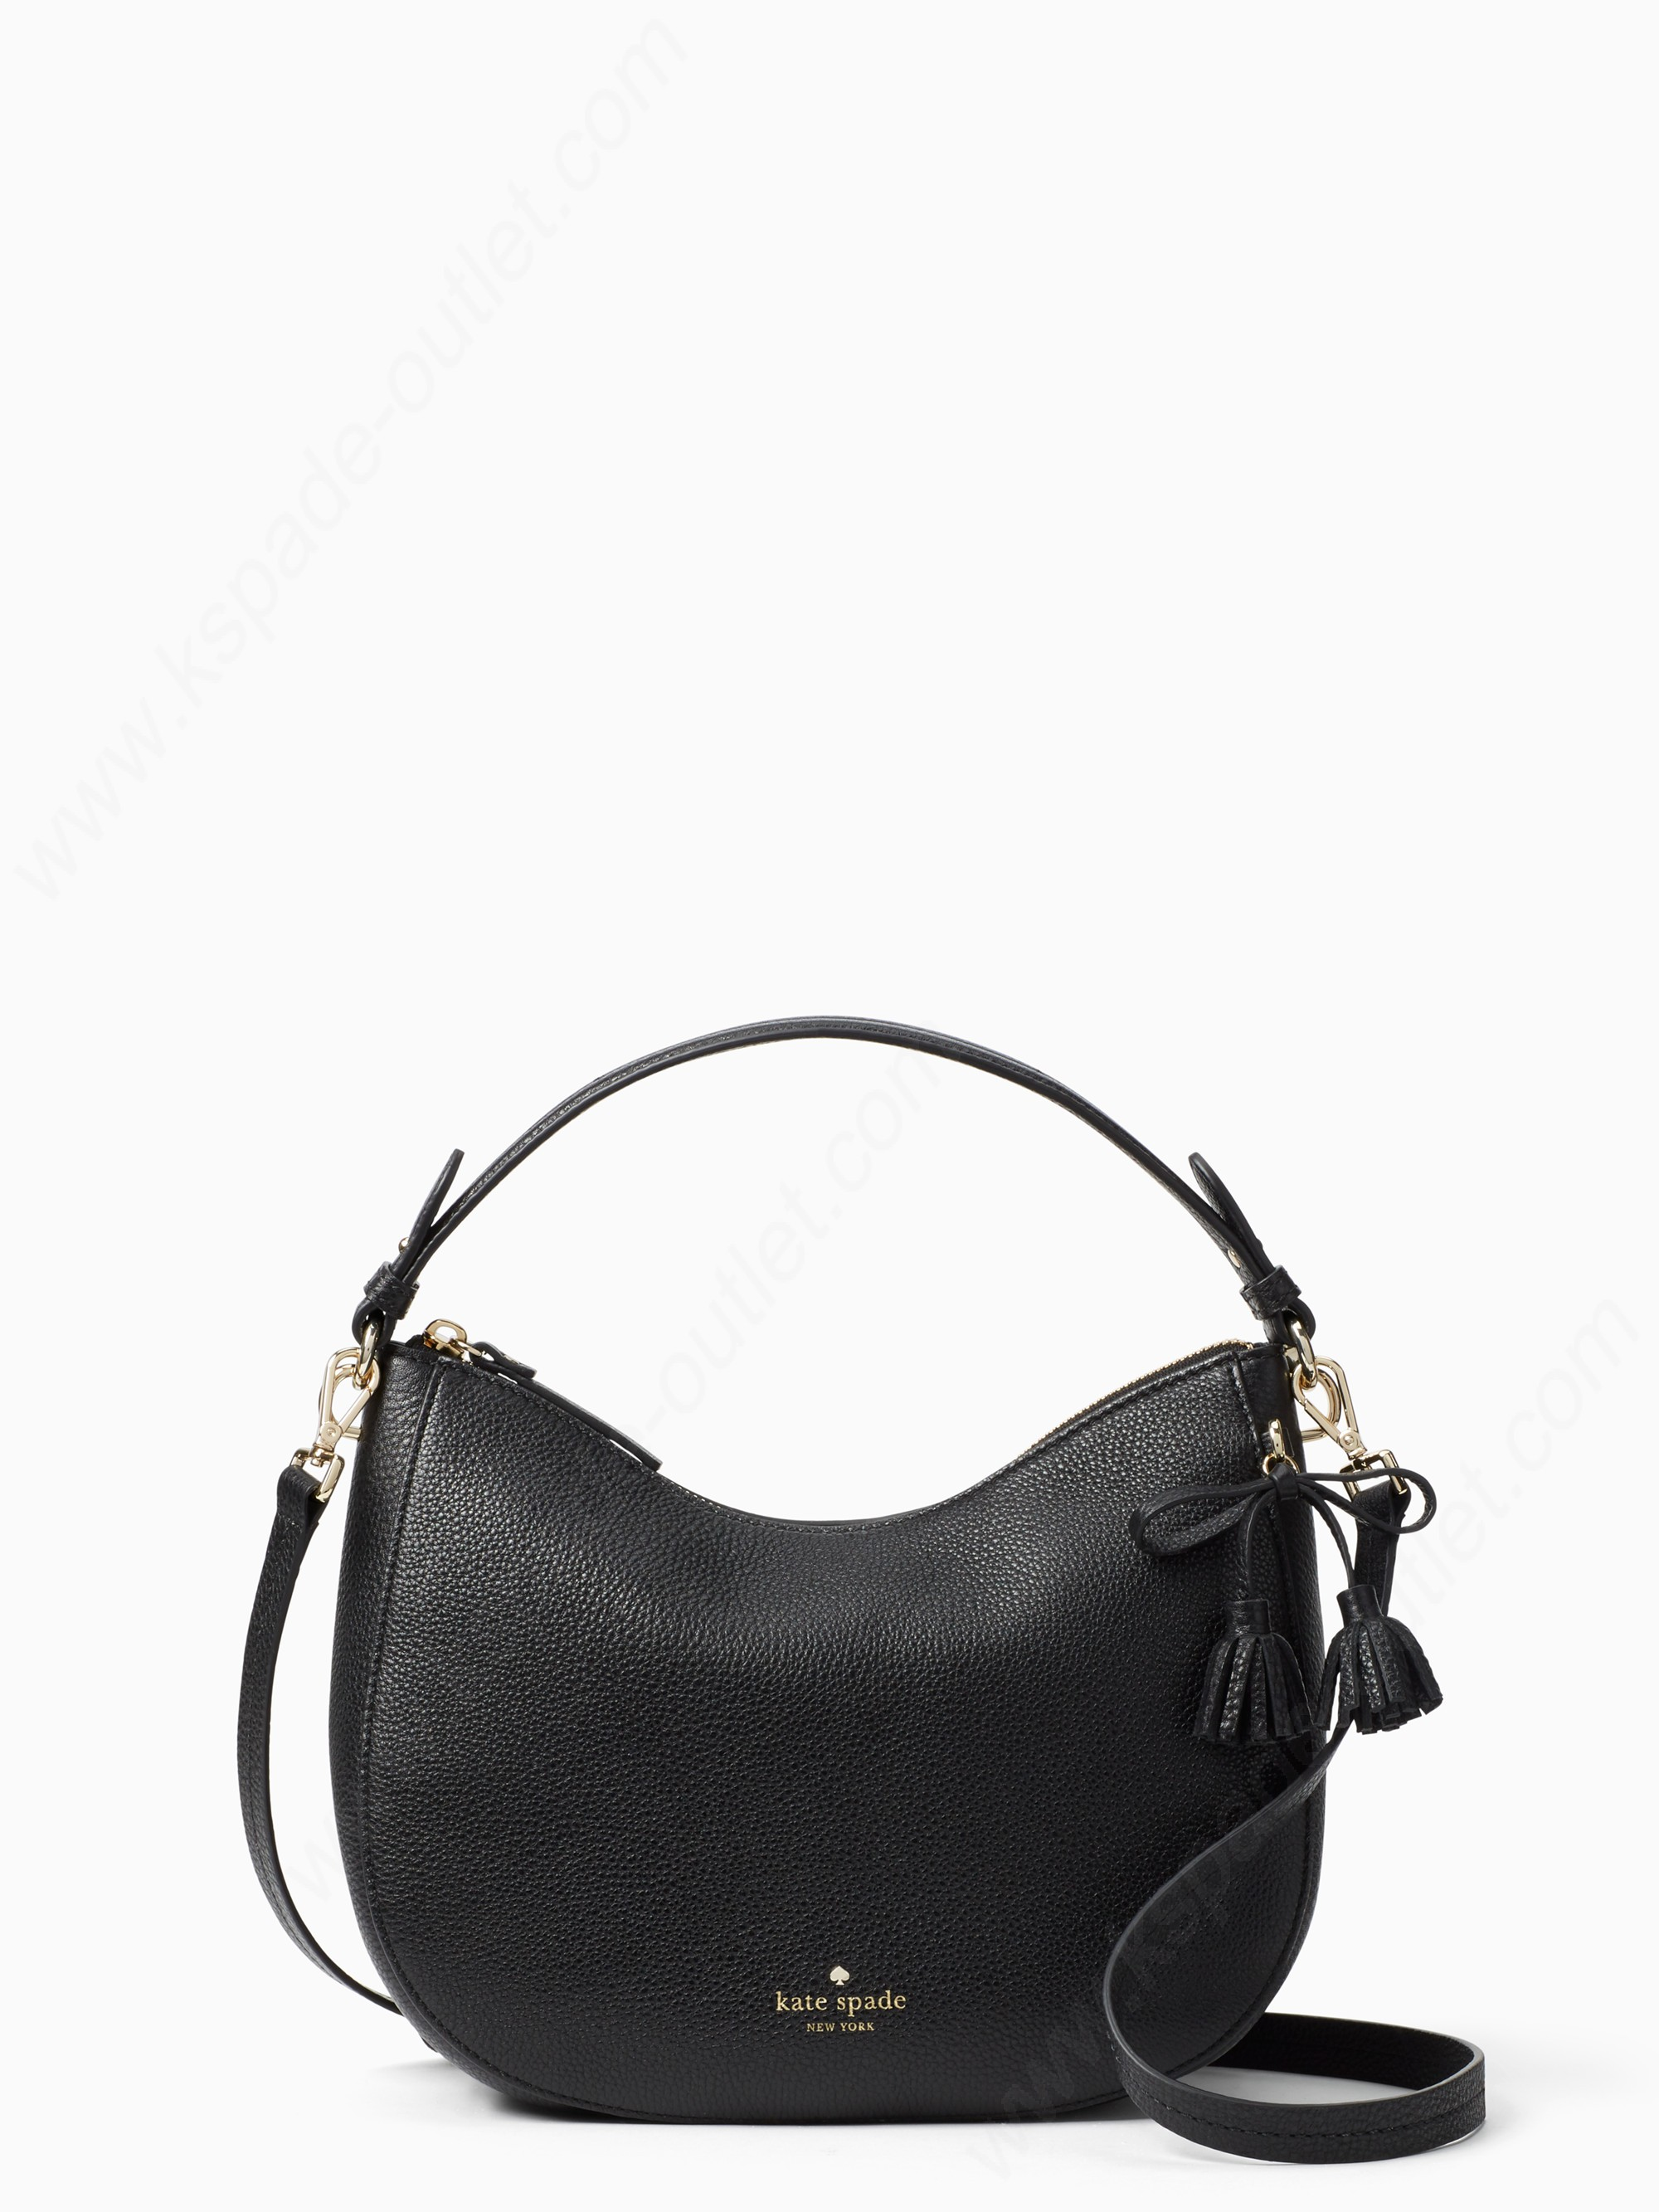 Kate Spade Lady Handbags Hayes Street Small Aiden - Kate Spade Lady Handbags Hayes Street Small Aiden